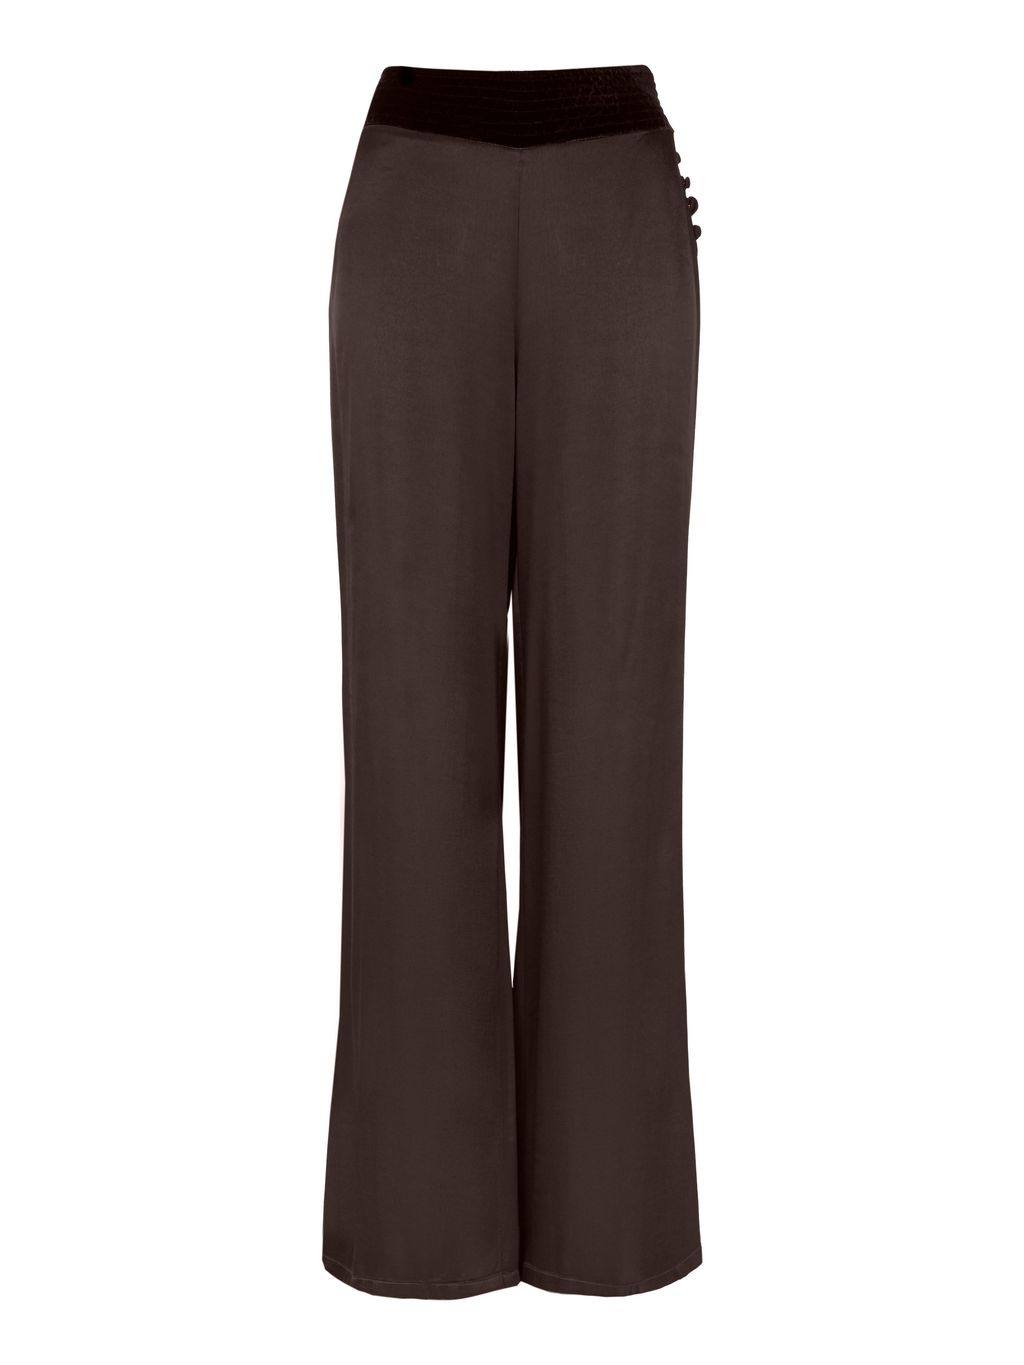 Alice Trousers Chocolate, Brown - length: standard; waist detail: wide waistband/cummerbund; waist: high rise; predominant colour: chocolate brown; secondary colour: black; occasions: casual, work, creative work; fibres: viscose/rayon - 100%; fit: wide leg; pattern type: fabric; pattern: colourblock; texture group: woven light midweight; style: standard; pattern size: standard (bottom); season: s/s 2016; wardrobe: highlight